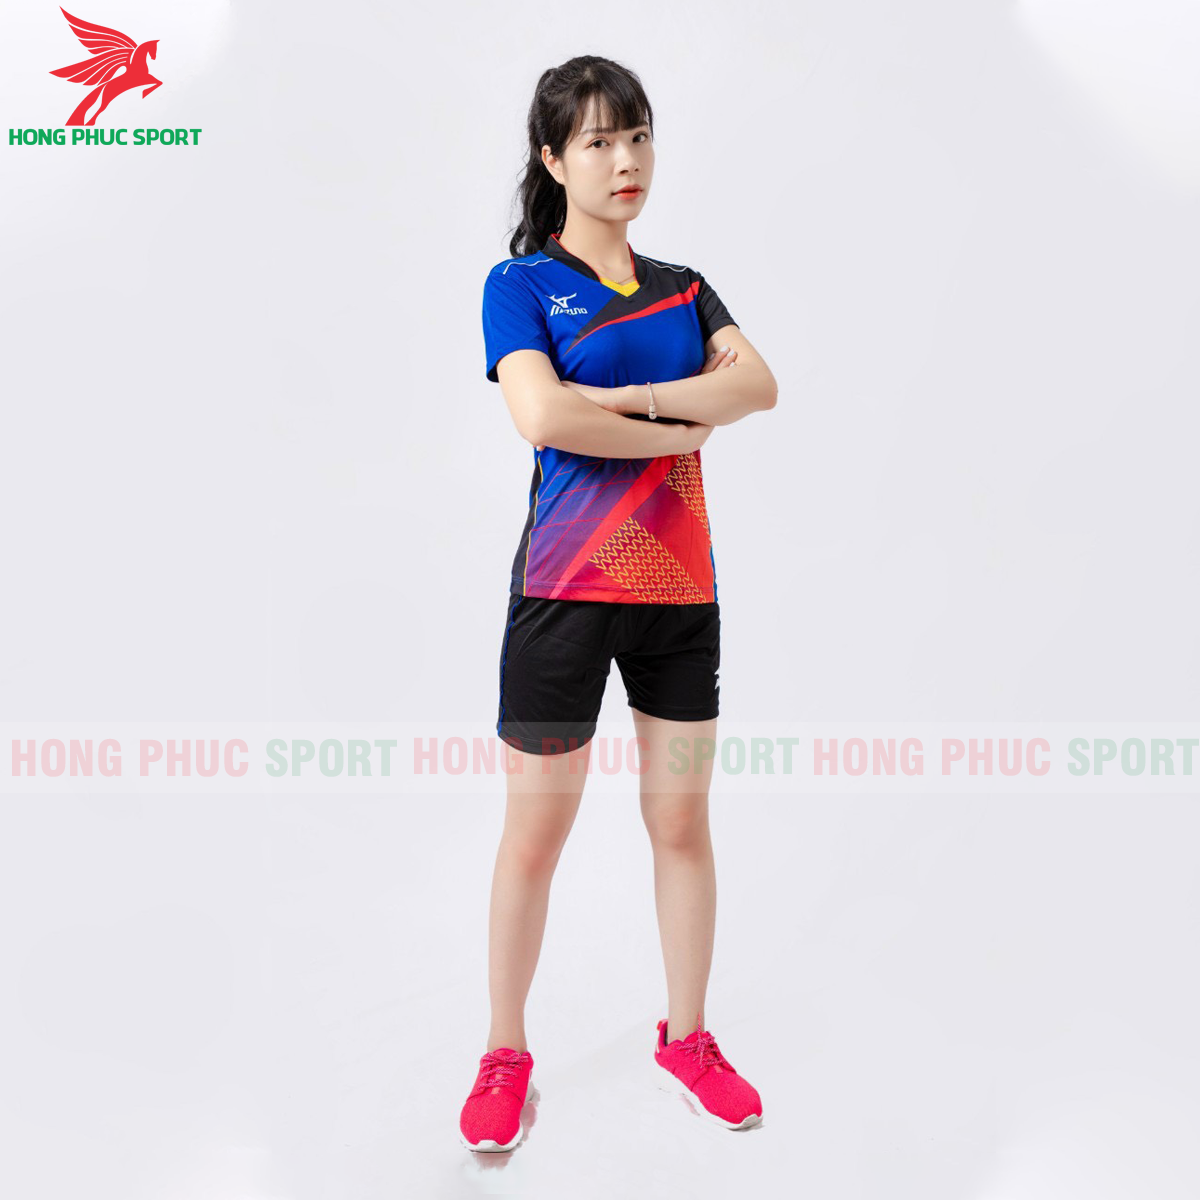 https://cdn.hongphucsport.com/unsafe/s4.shopbay.vn/files/285/quan-ao-bong-chuyen-mizuno-2021-mau-xanh-2-607507653820b.png